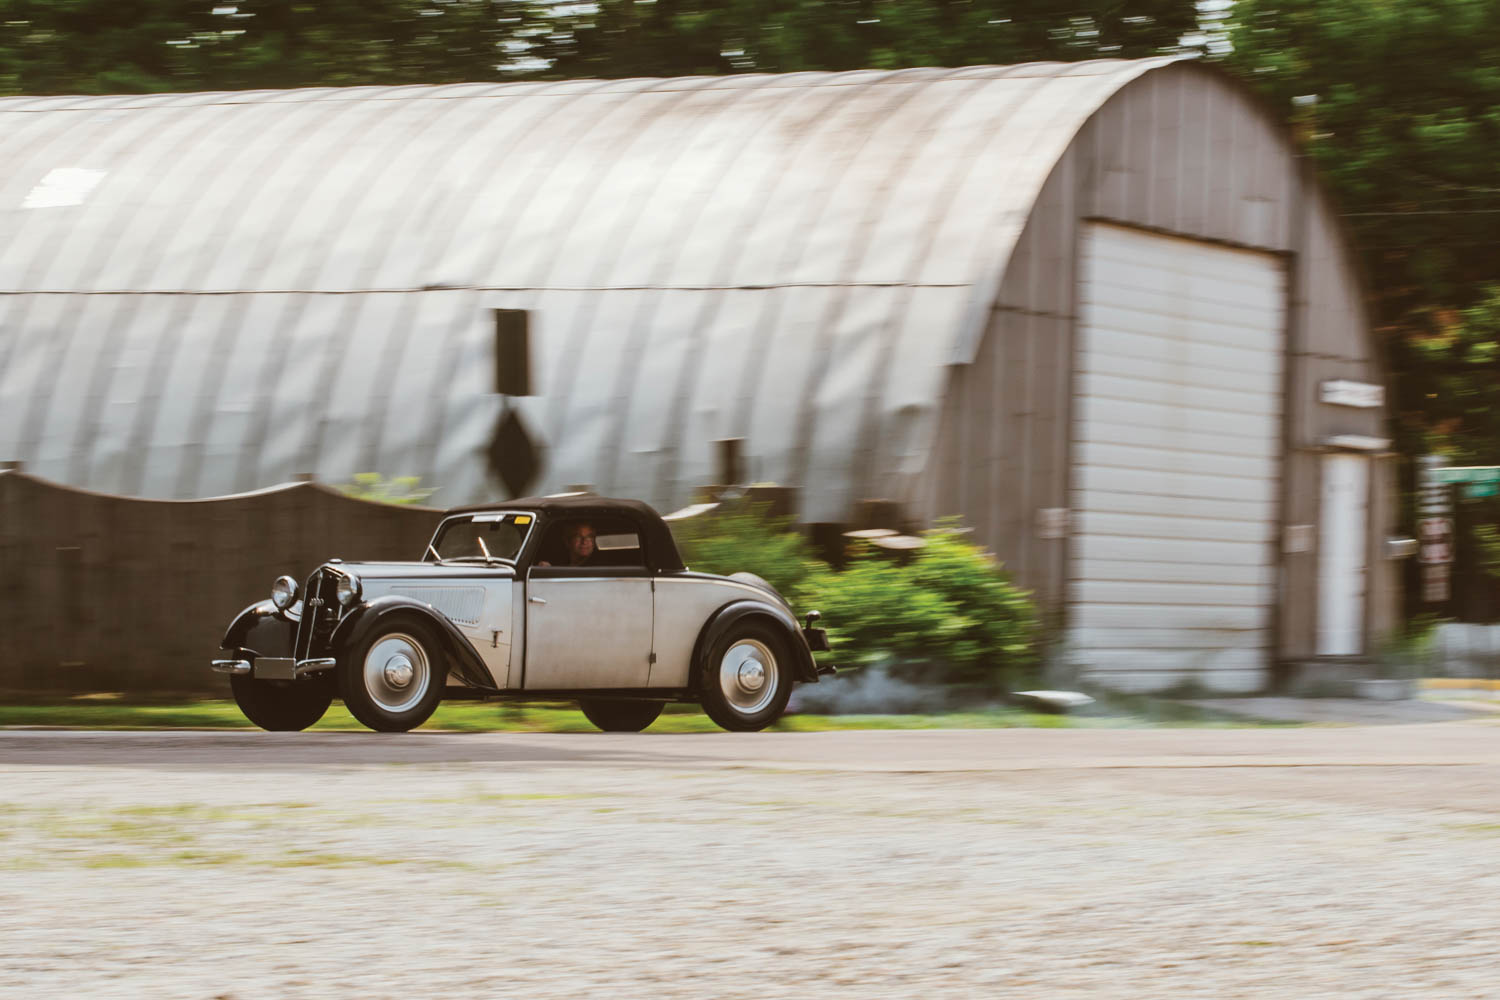 Part of Audi's heritage collection hidden away in corn country, this 1937 DKW F7 Meisterklasse stretches its legs through the quiet streets of College Corner, Ohio.